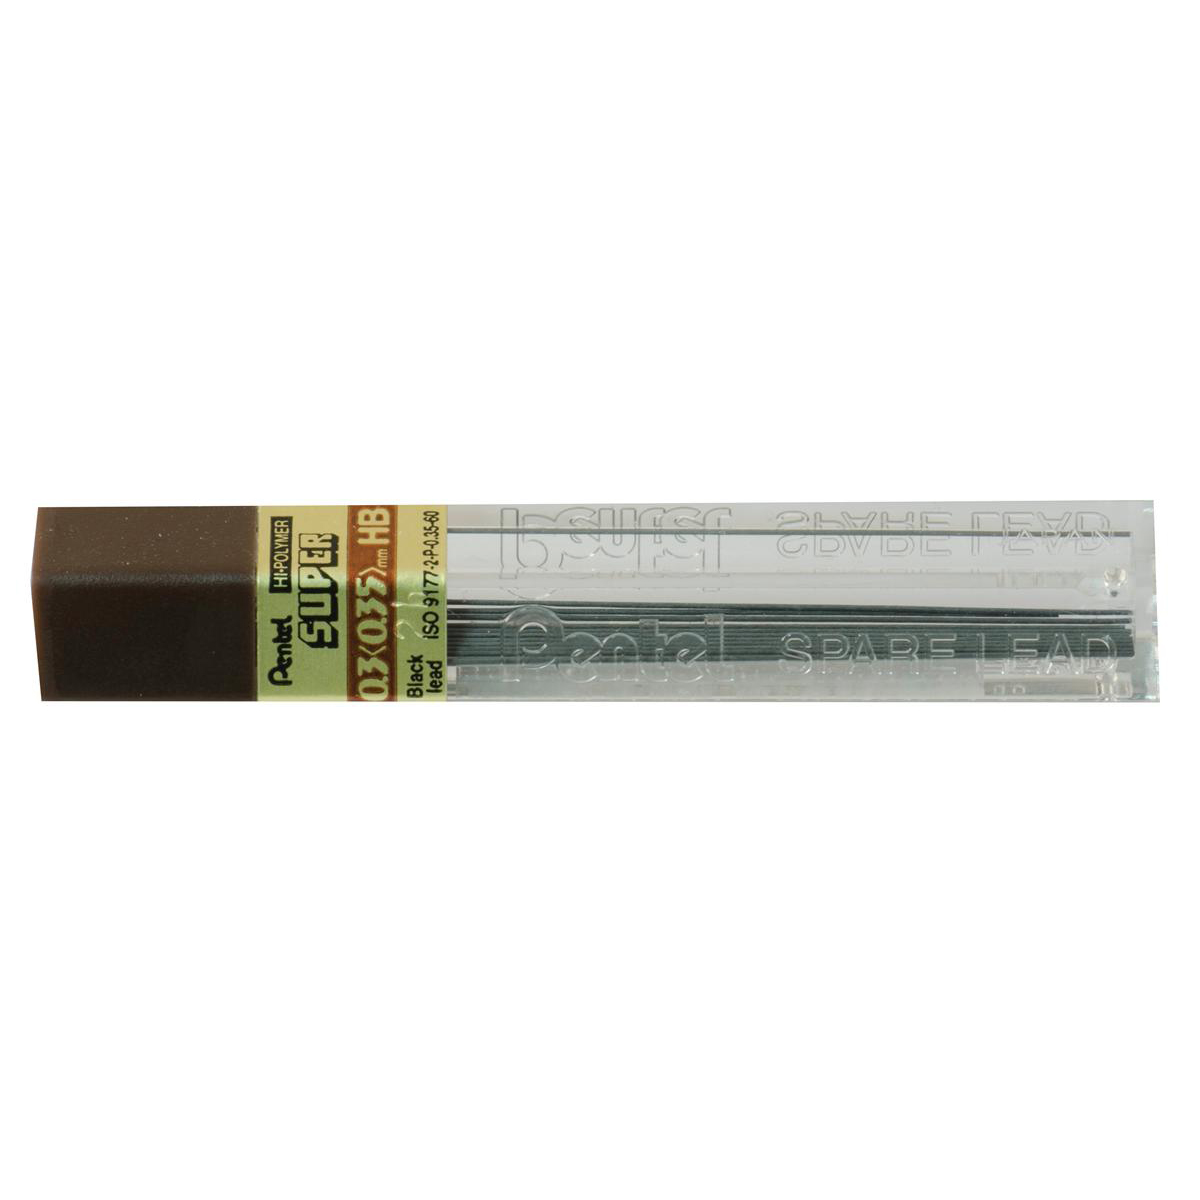 Refill Lead Extra-strong Hi-polymer in Tube of 12 x HB 0.3mm [12 Tubes]